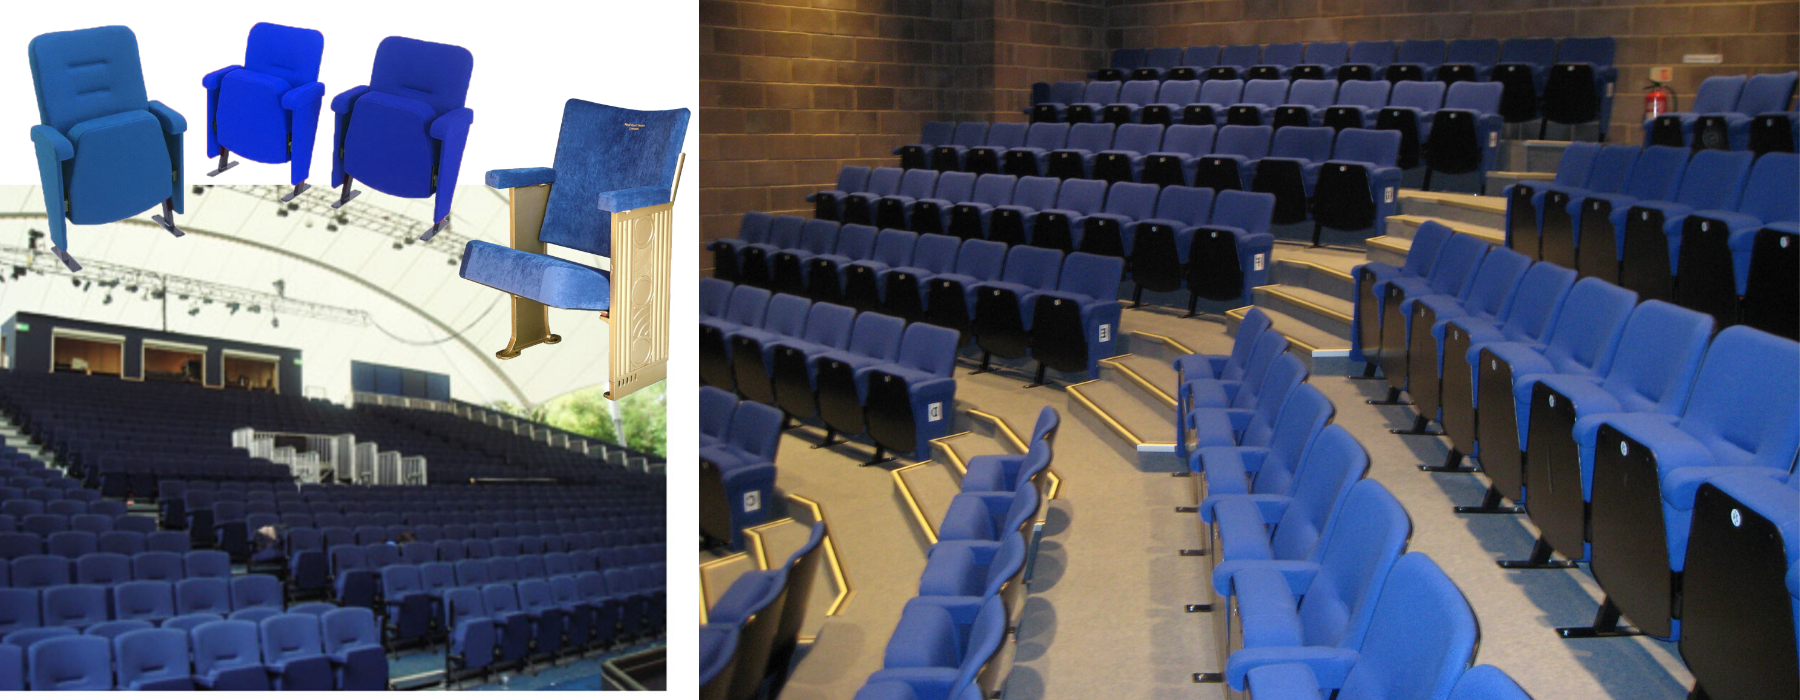 Blue fabric colour for fixed seating shown on individual theatre seats and in theatre auditoria